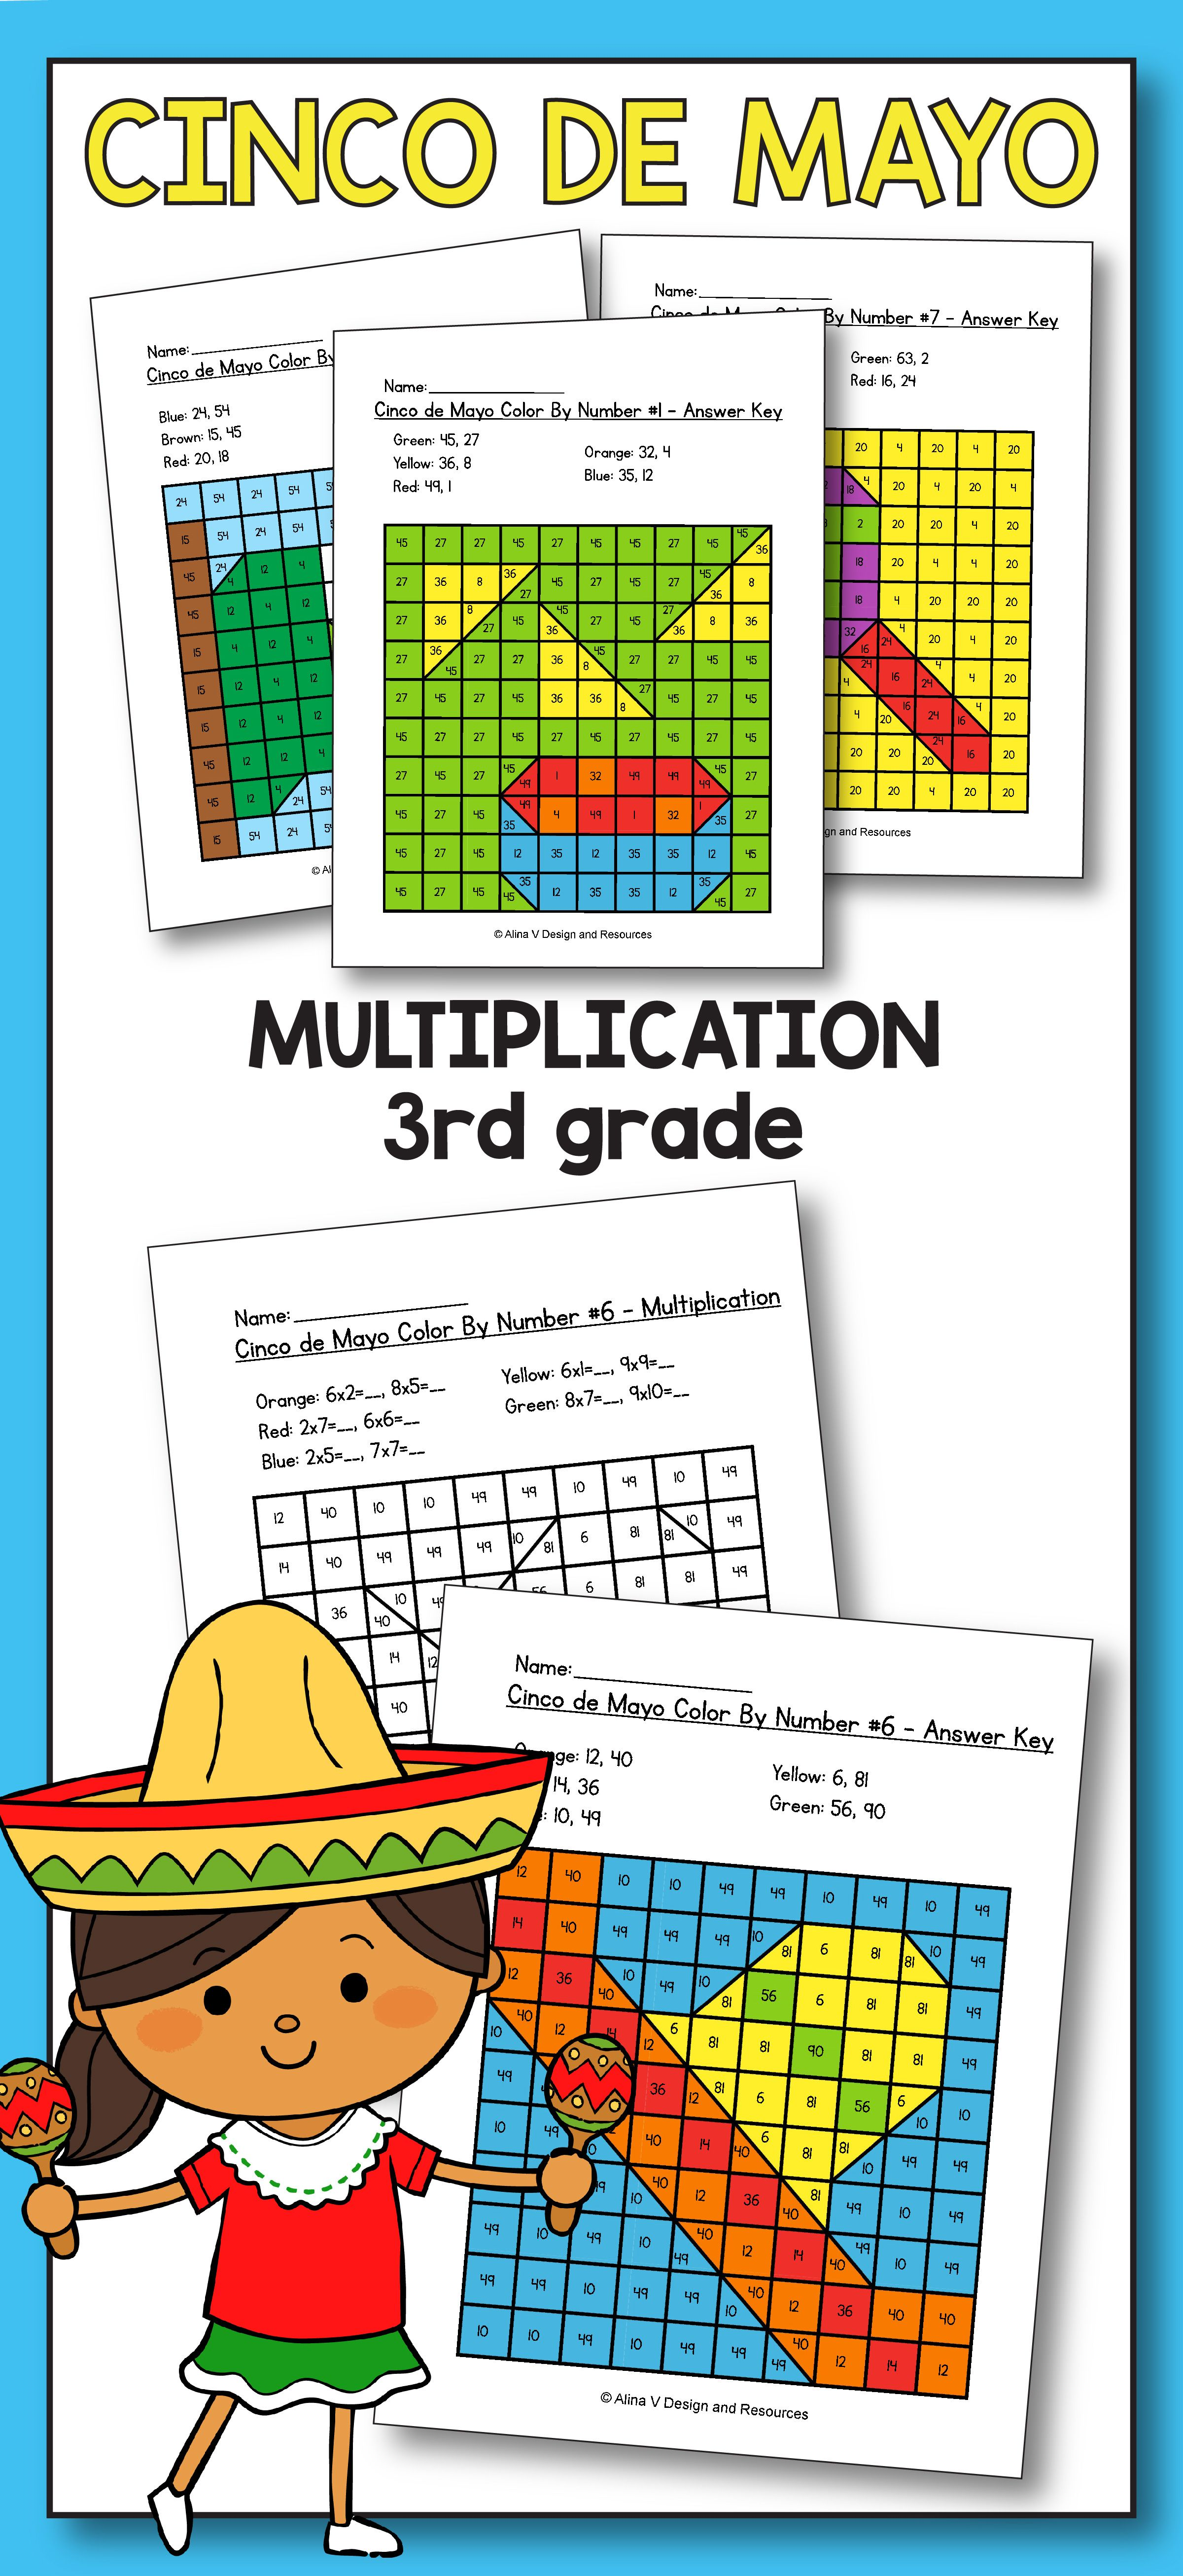 Day of the Dead Activities for 3rd Grade fun multiplication worksheets    Elementary math lessons [ 5224 x 2400 Pixel ]